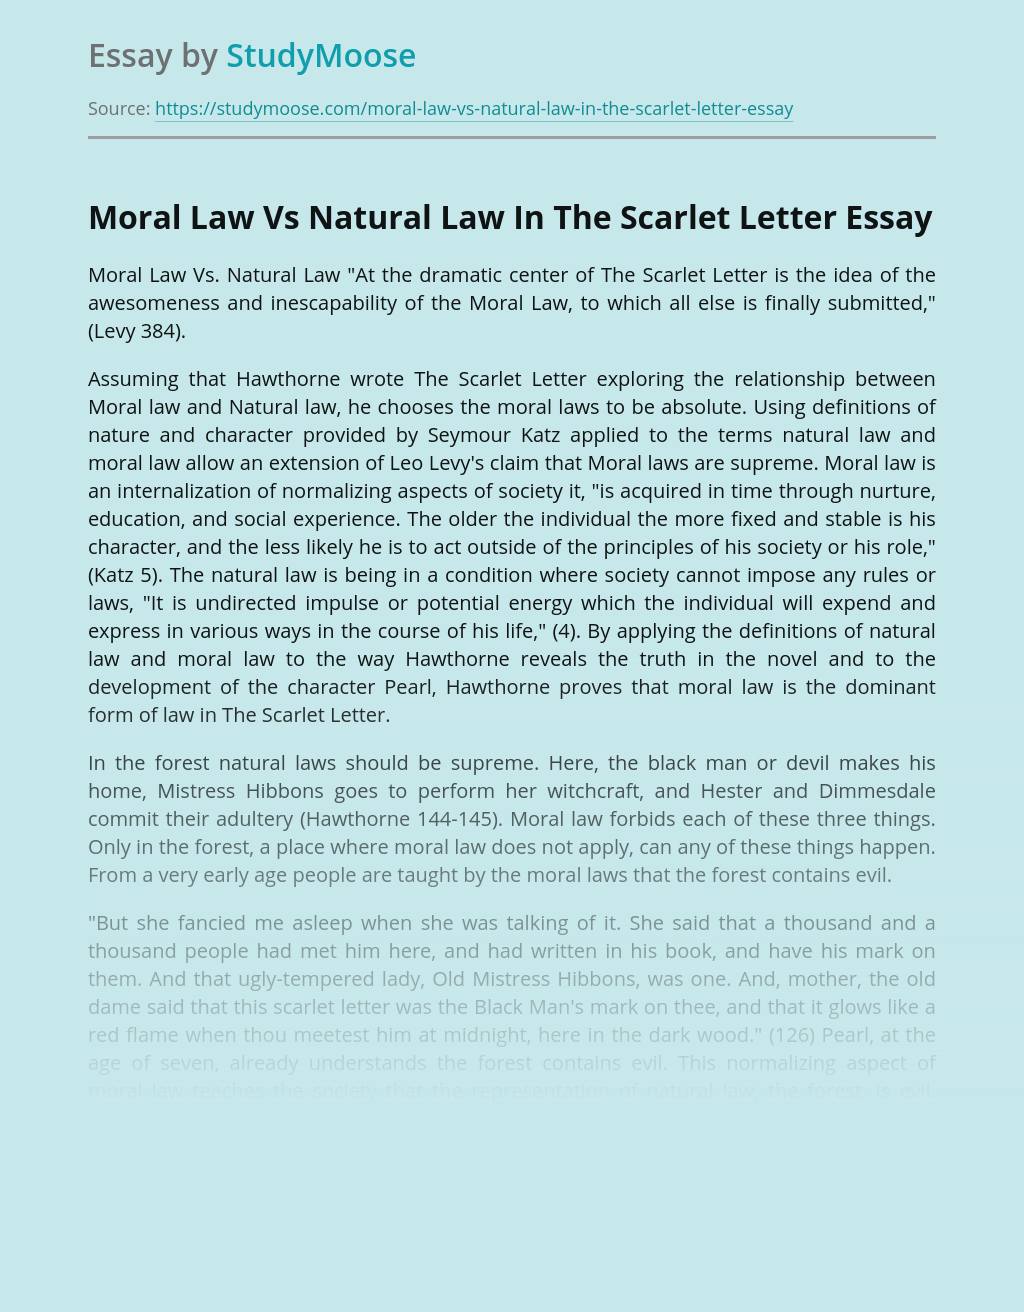 Moral Law Vs Natural Law In The Scarlet Letter